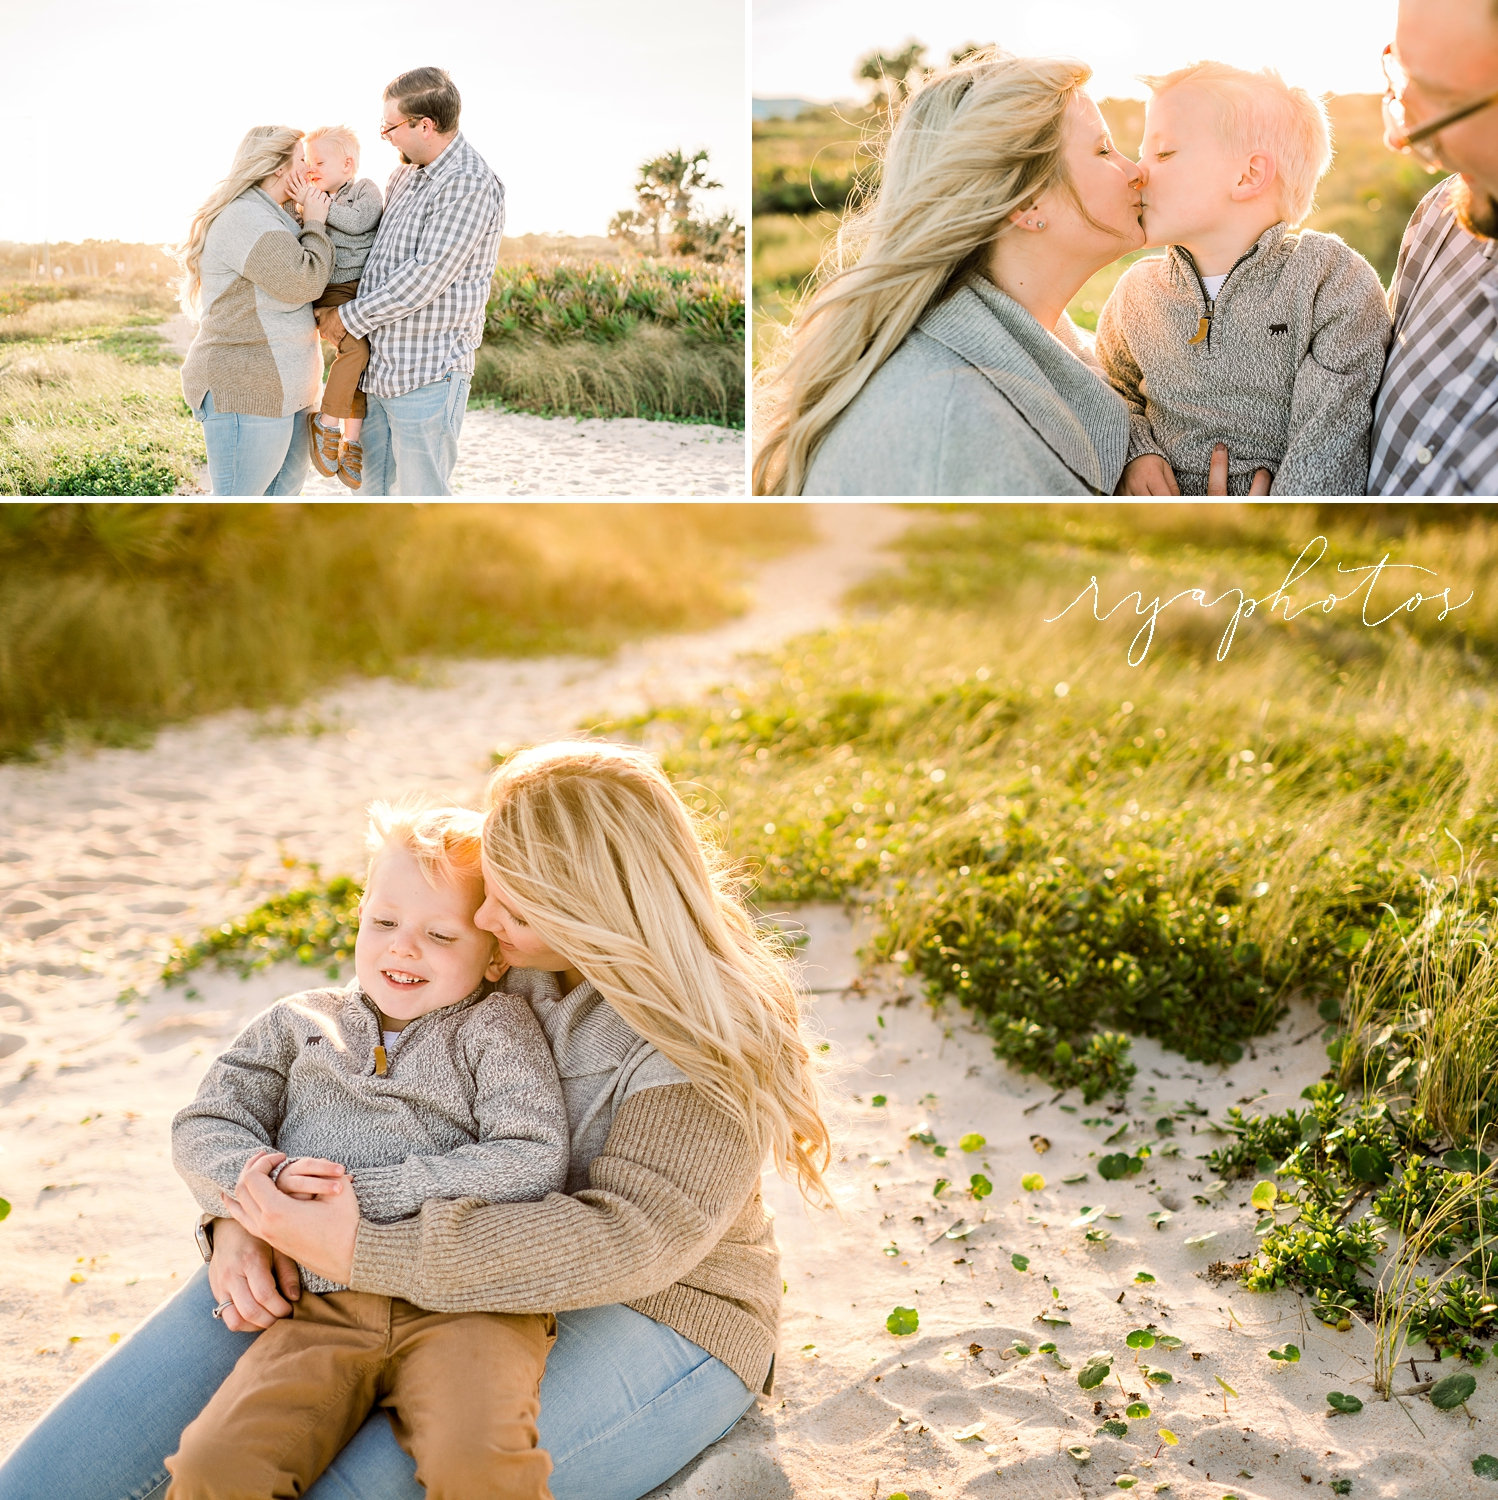 image collage, mother and father with young son, cozy beach outfits, Ryaphotos